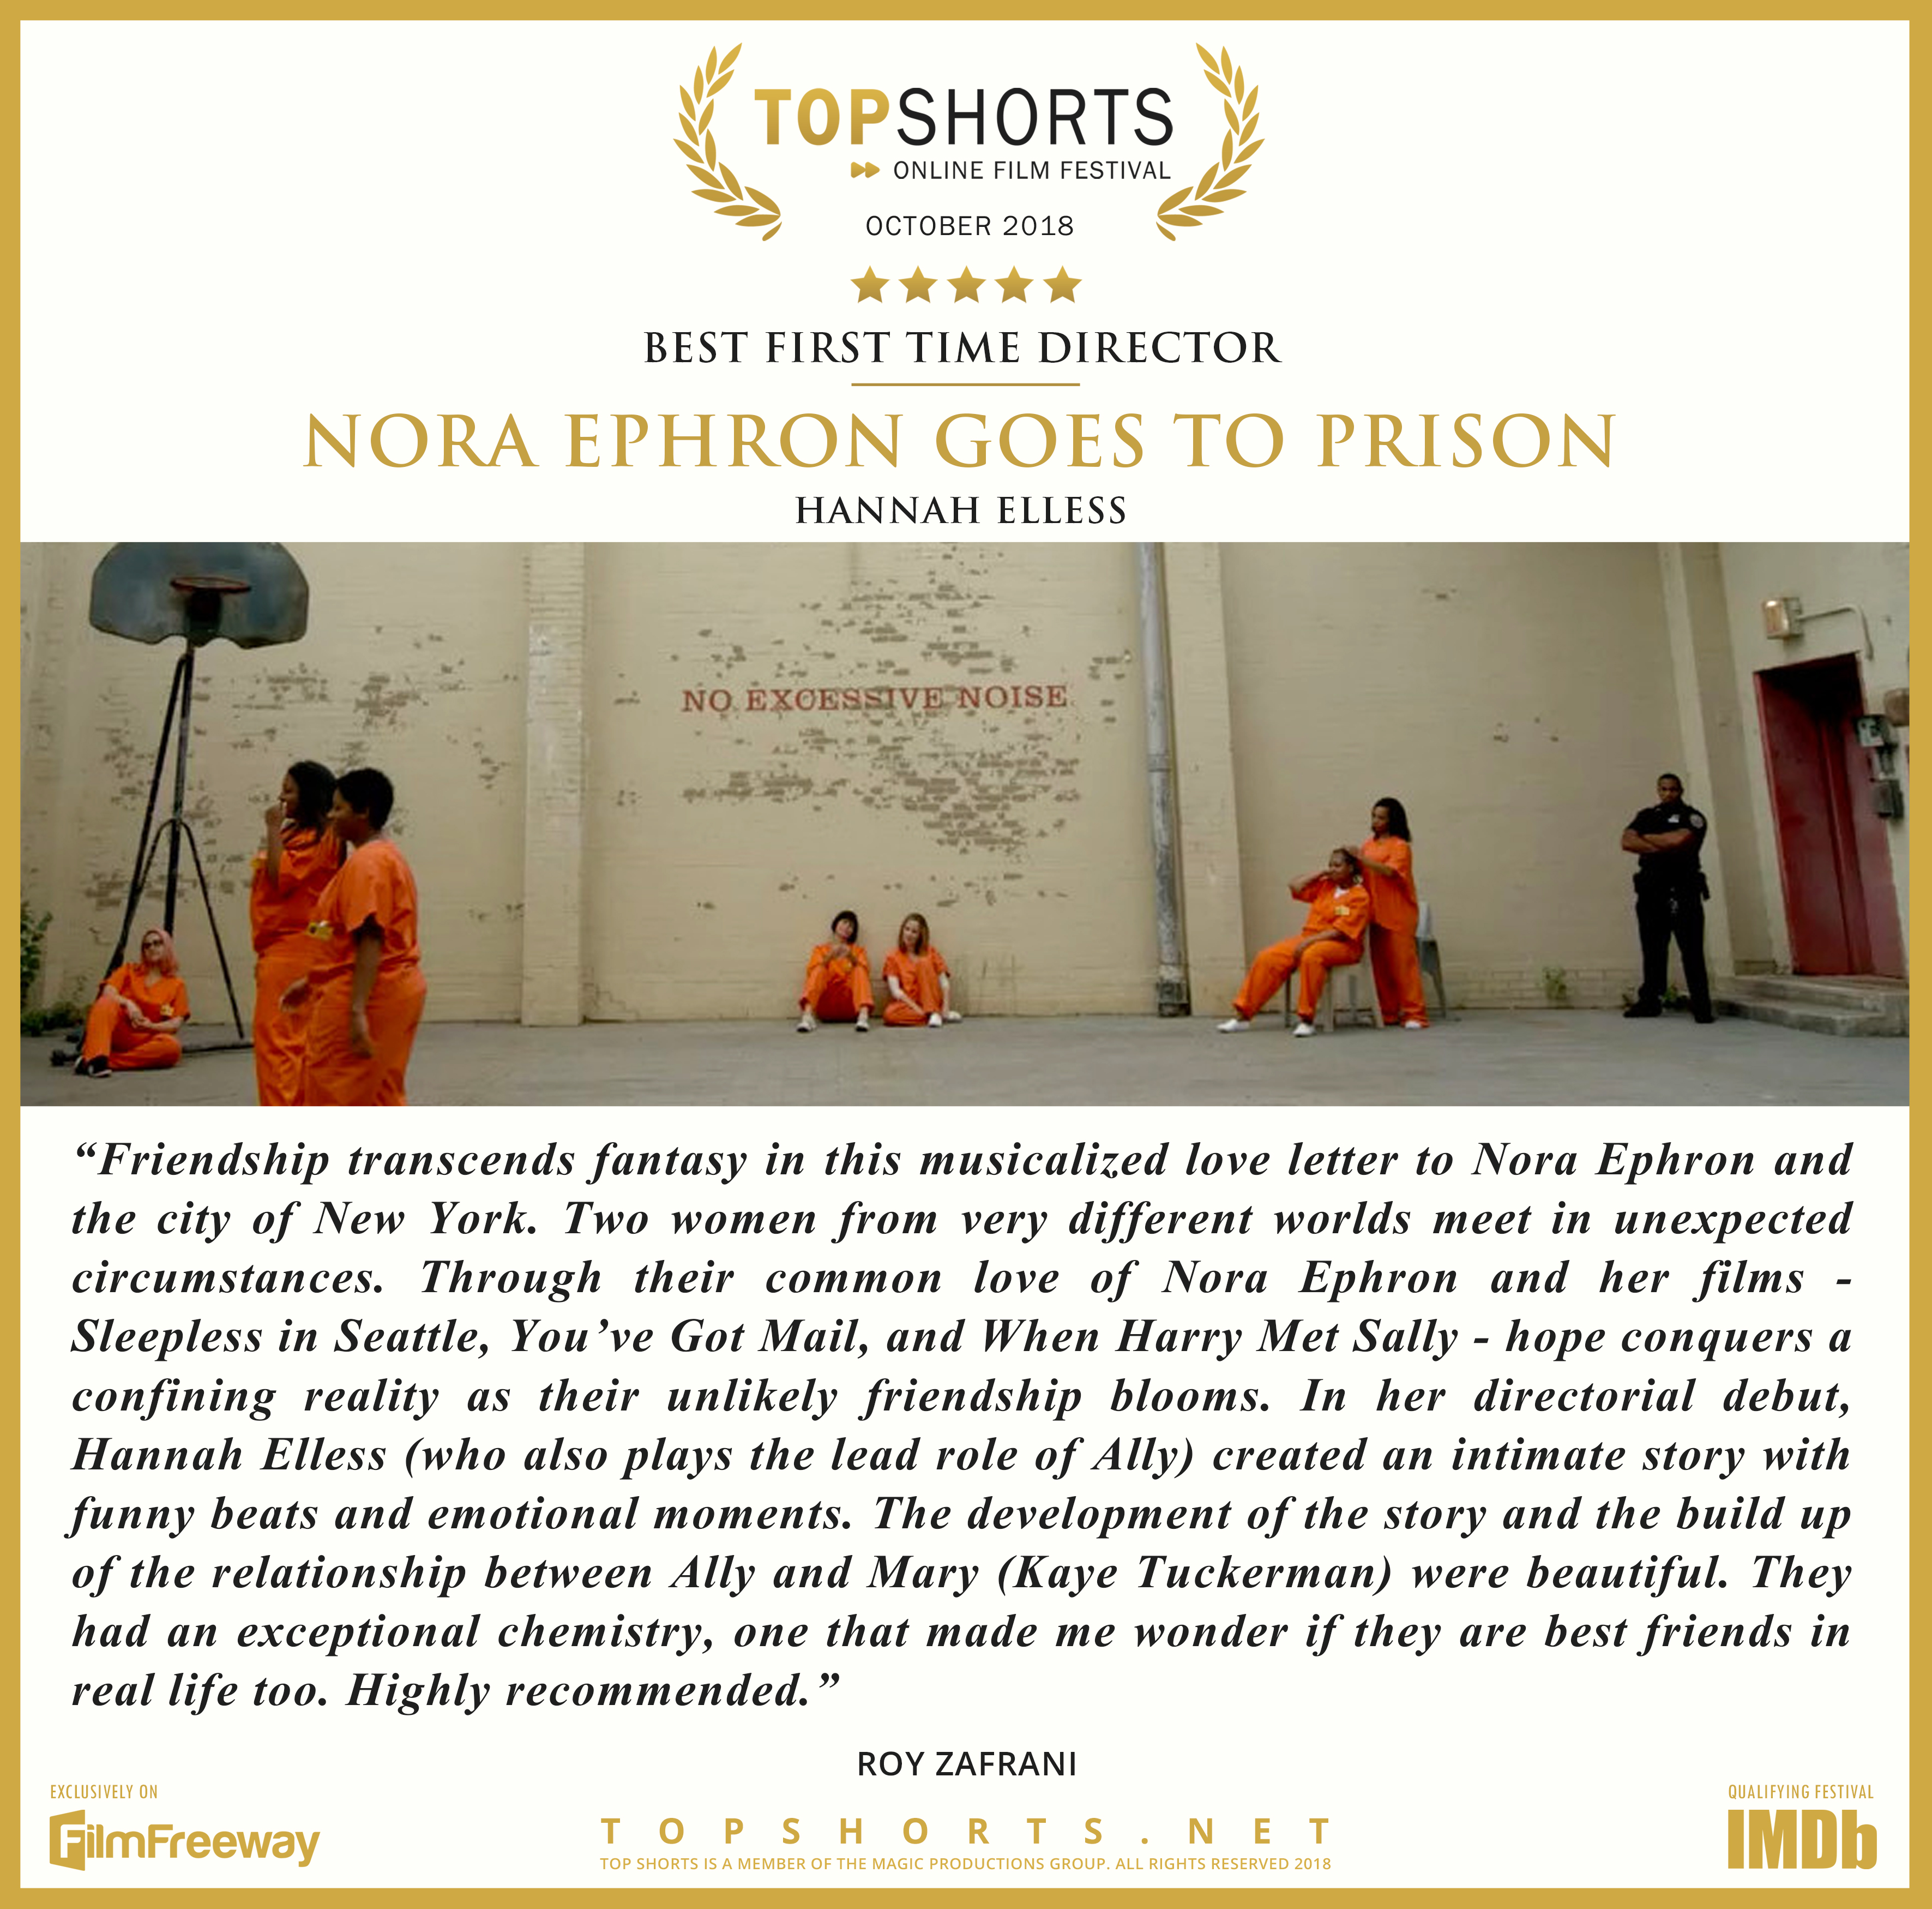 2018 10 Best First Time Director - Nora